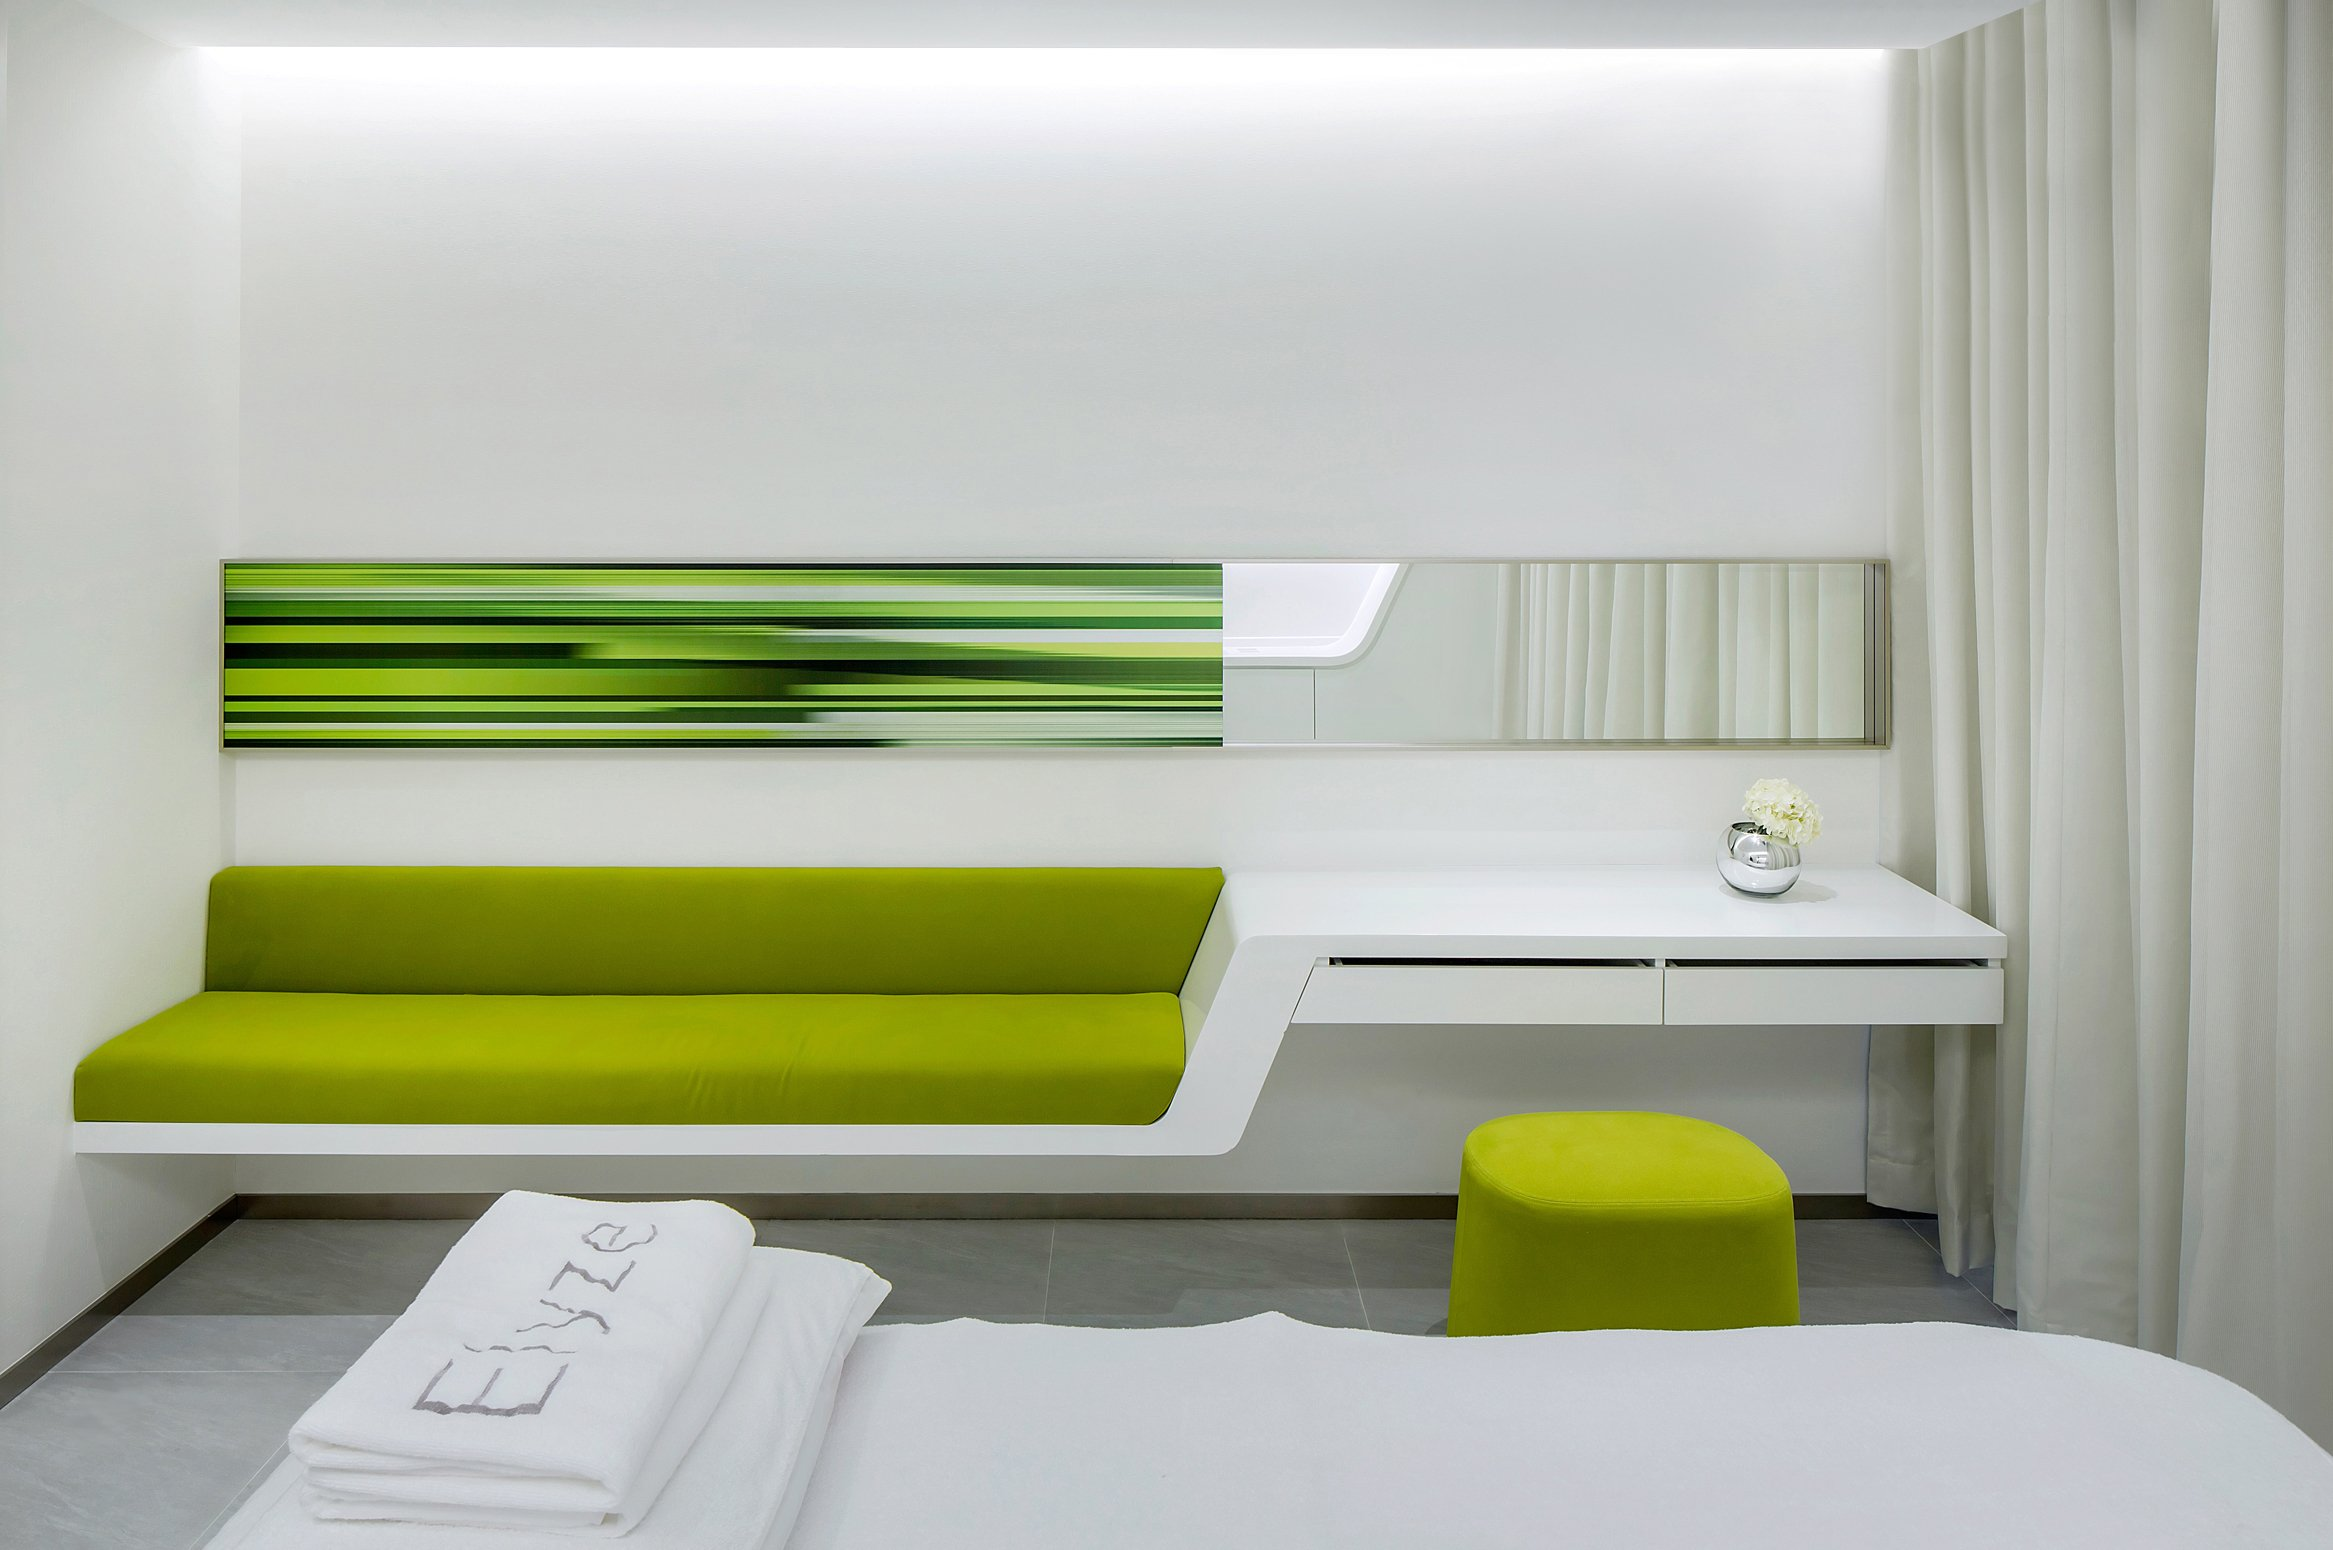 Medical center interior on pinterest medical center for Green interior designs